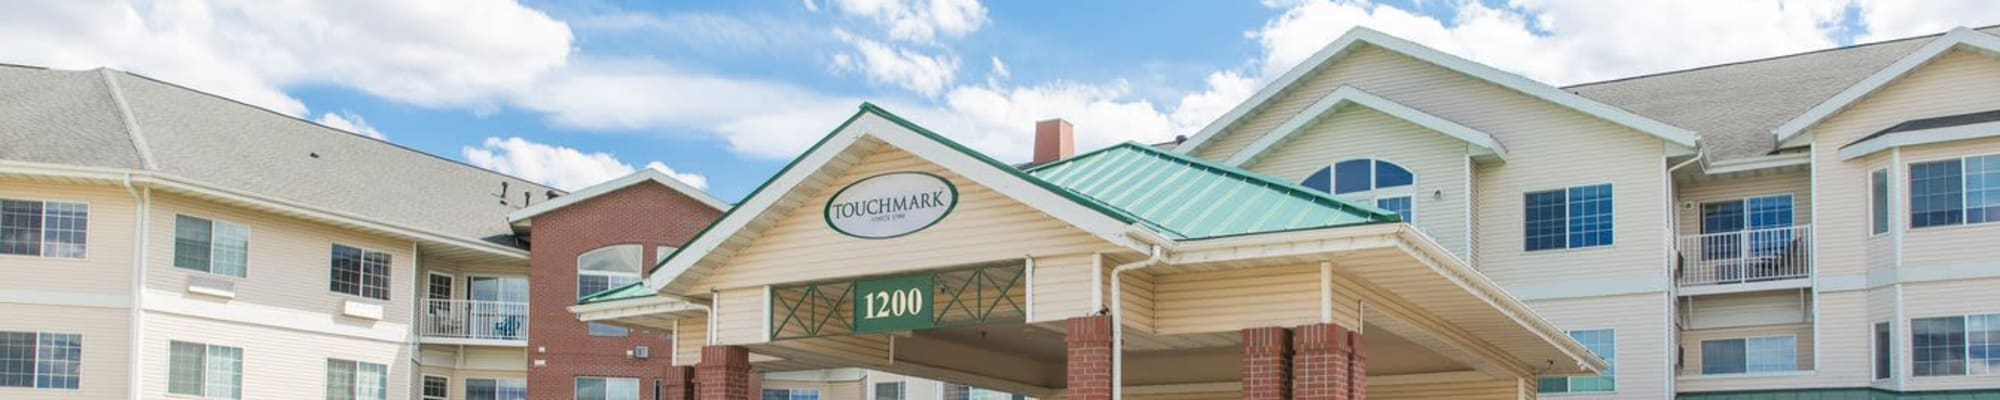 Life enrichment and wellness at Touchmark at Harwood Groves in Fargo, North Dakota